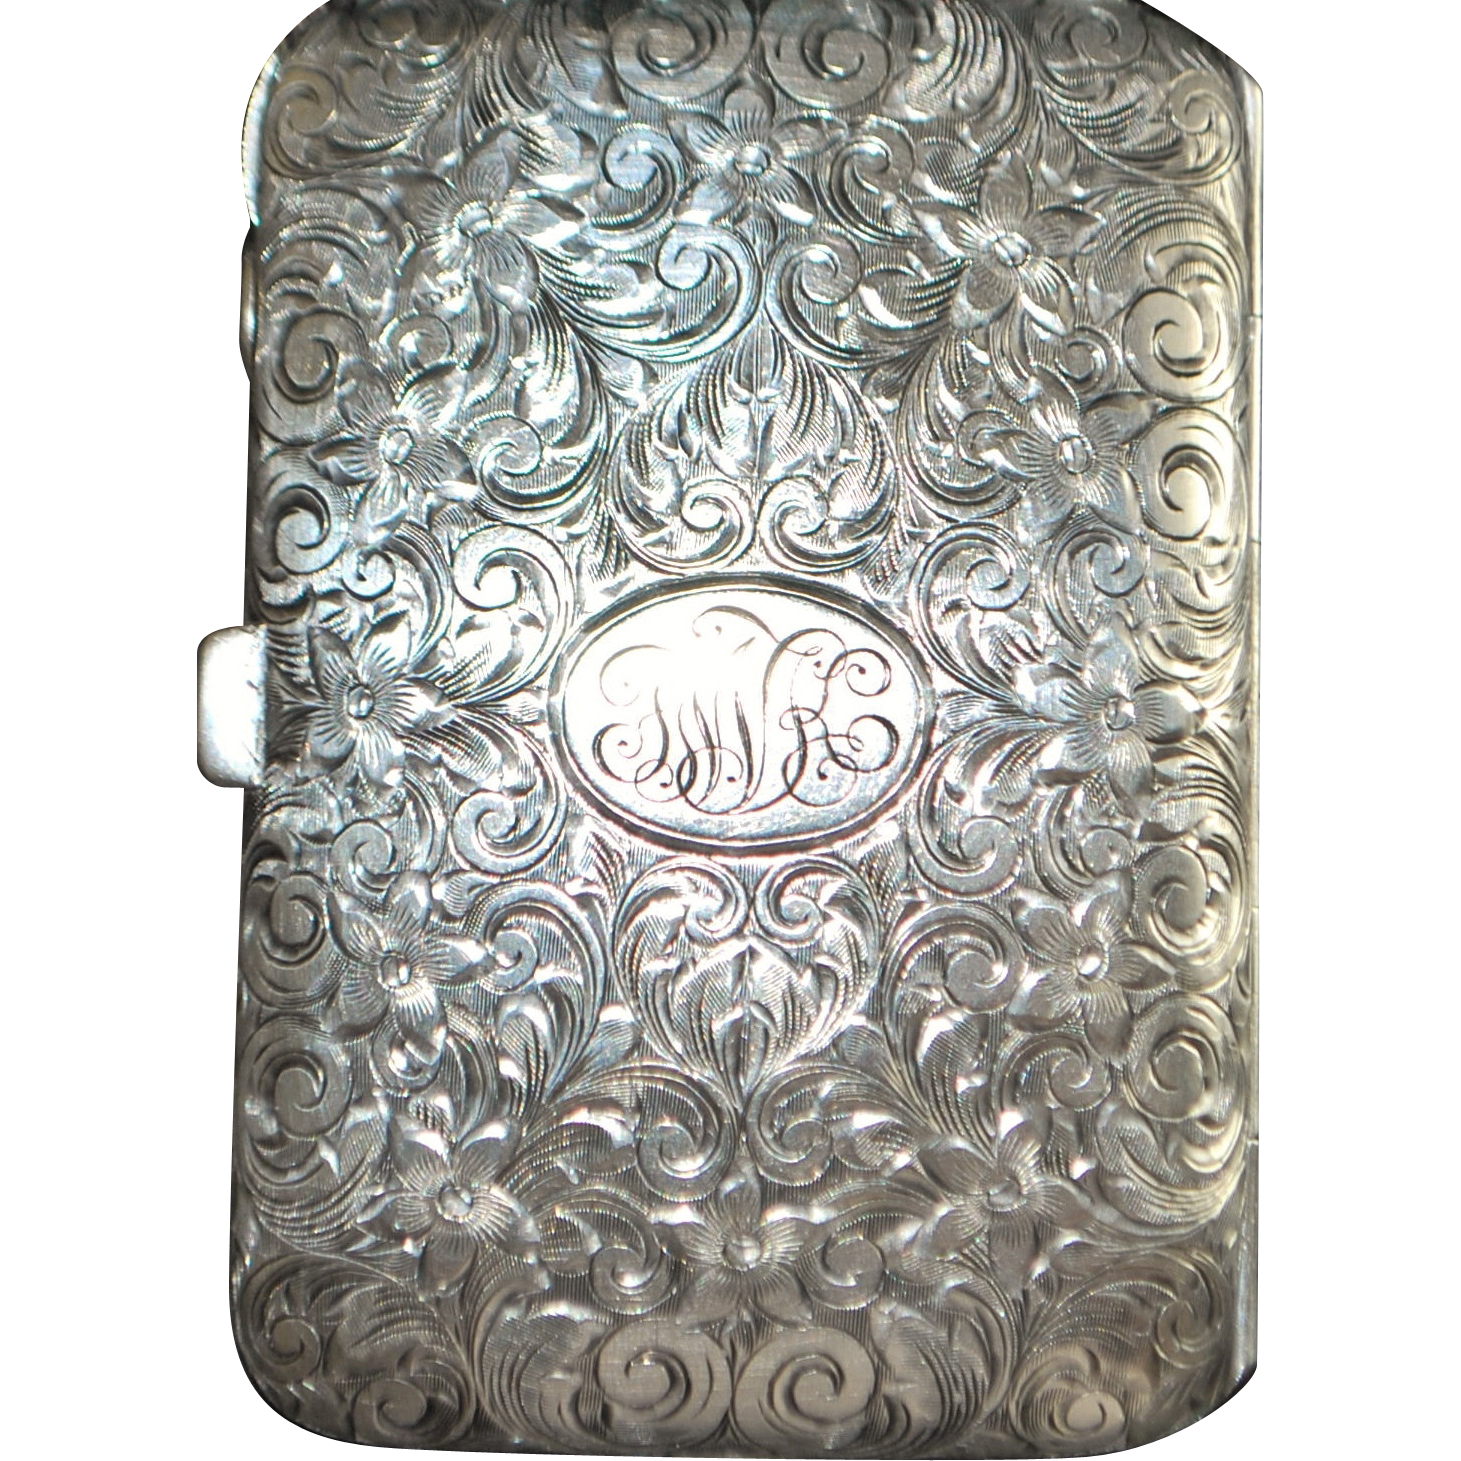 Sterling Silver Lady's Evening Purse - 1920's